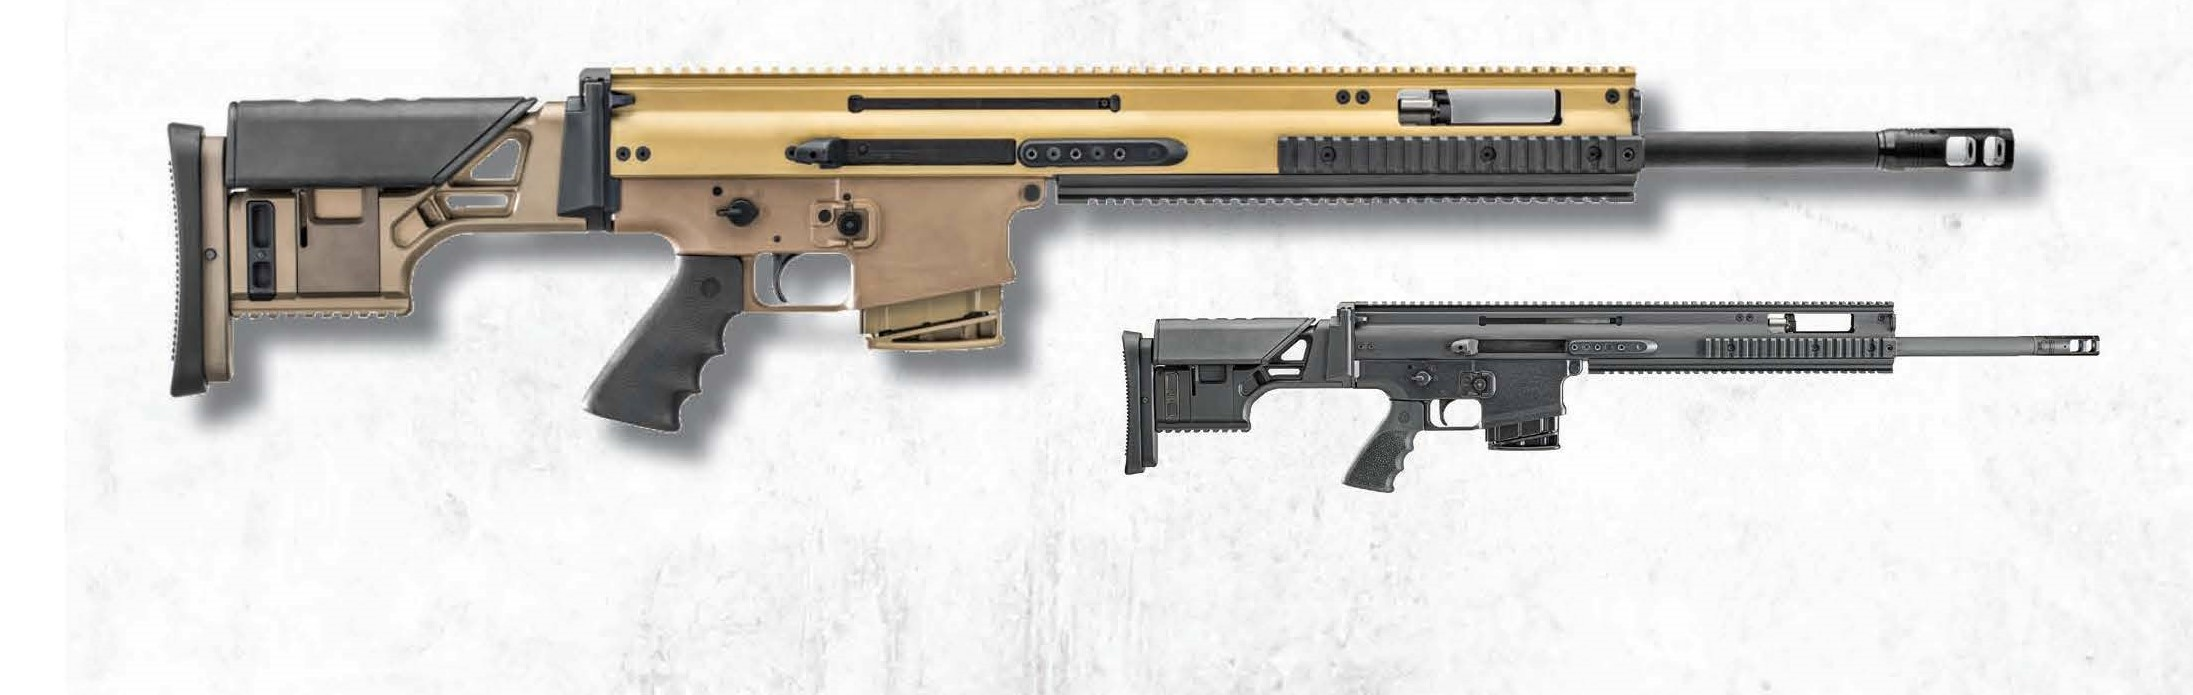 FN SCAR 20s 6.5 CM shown in black and FDE